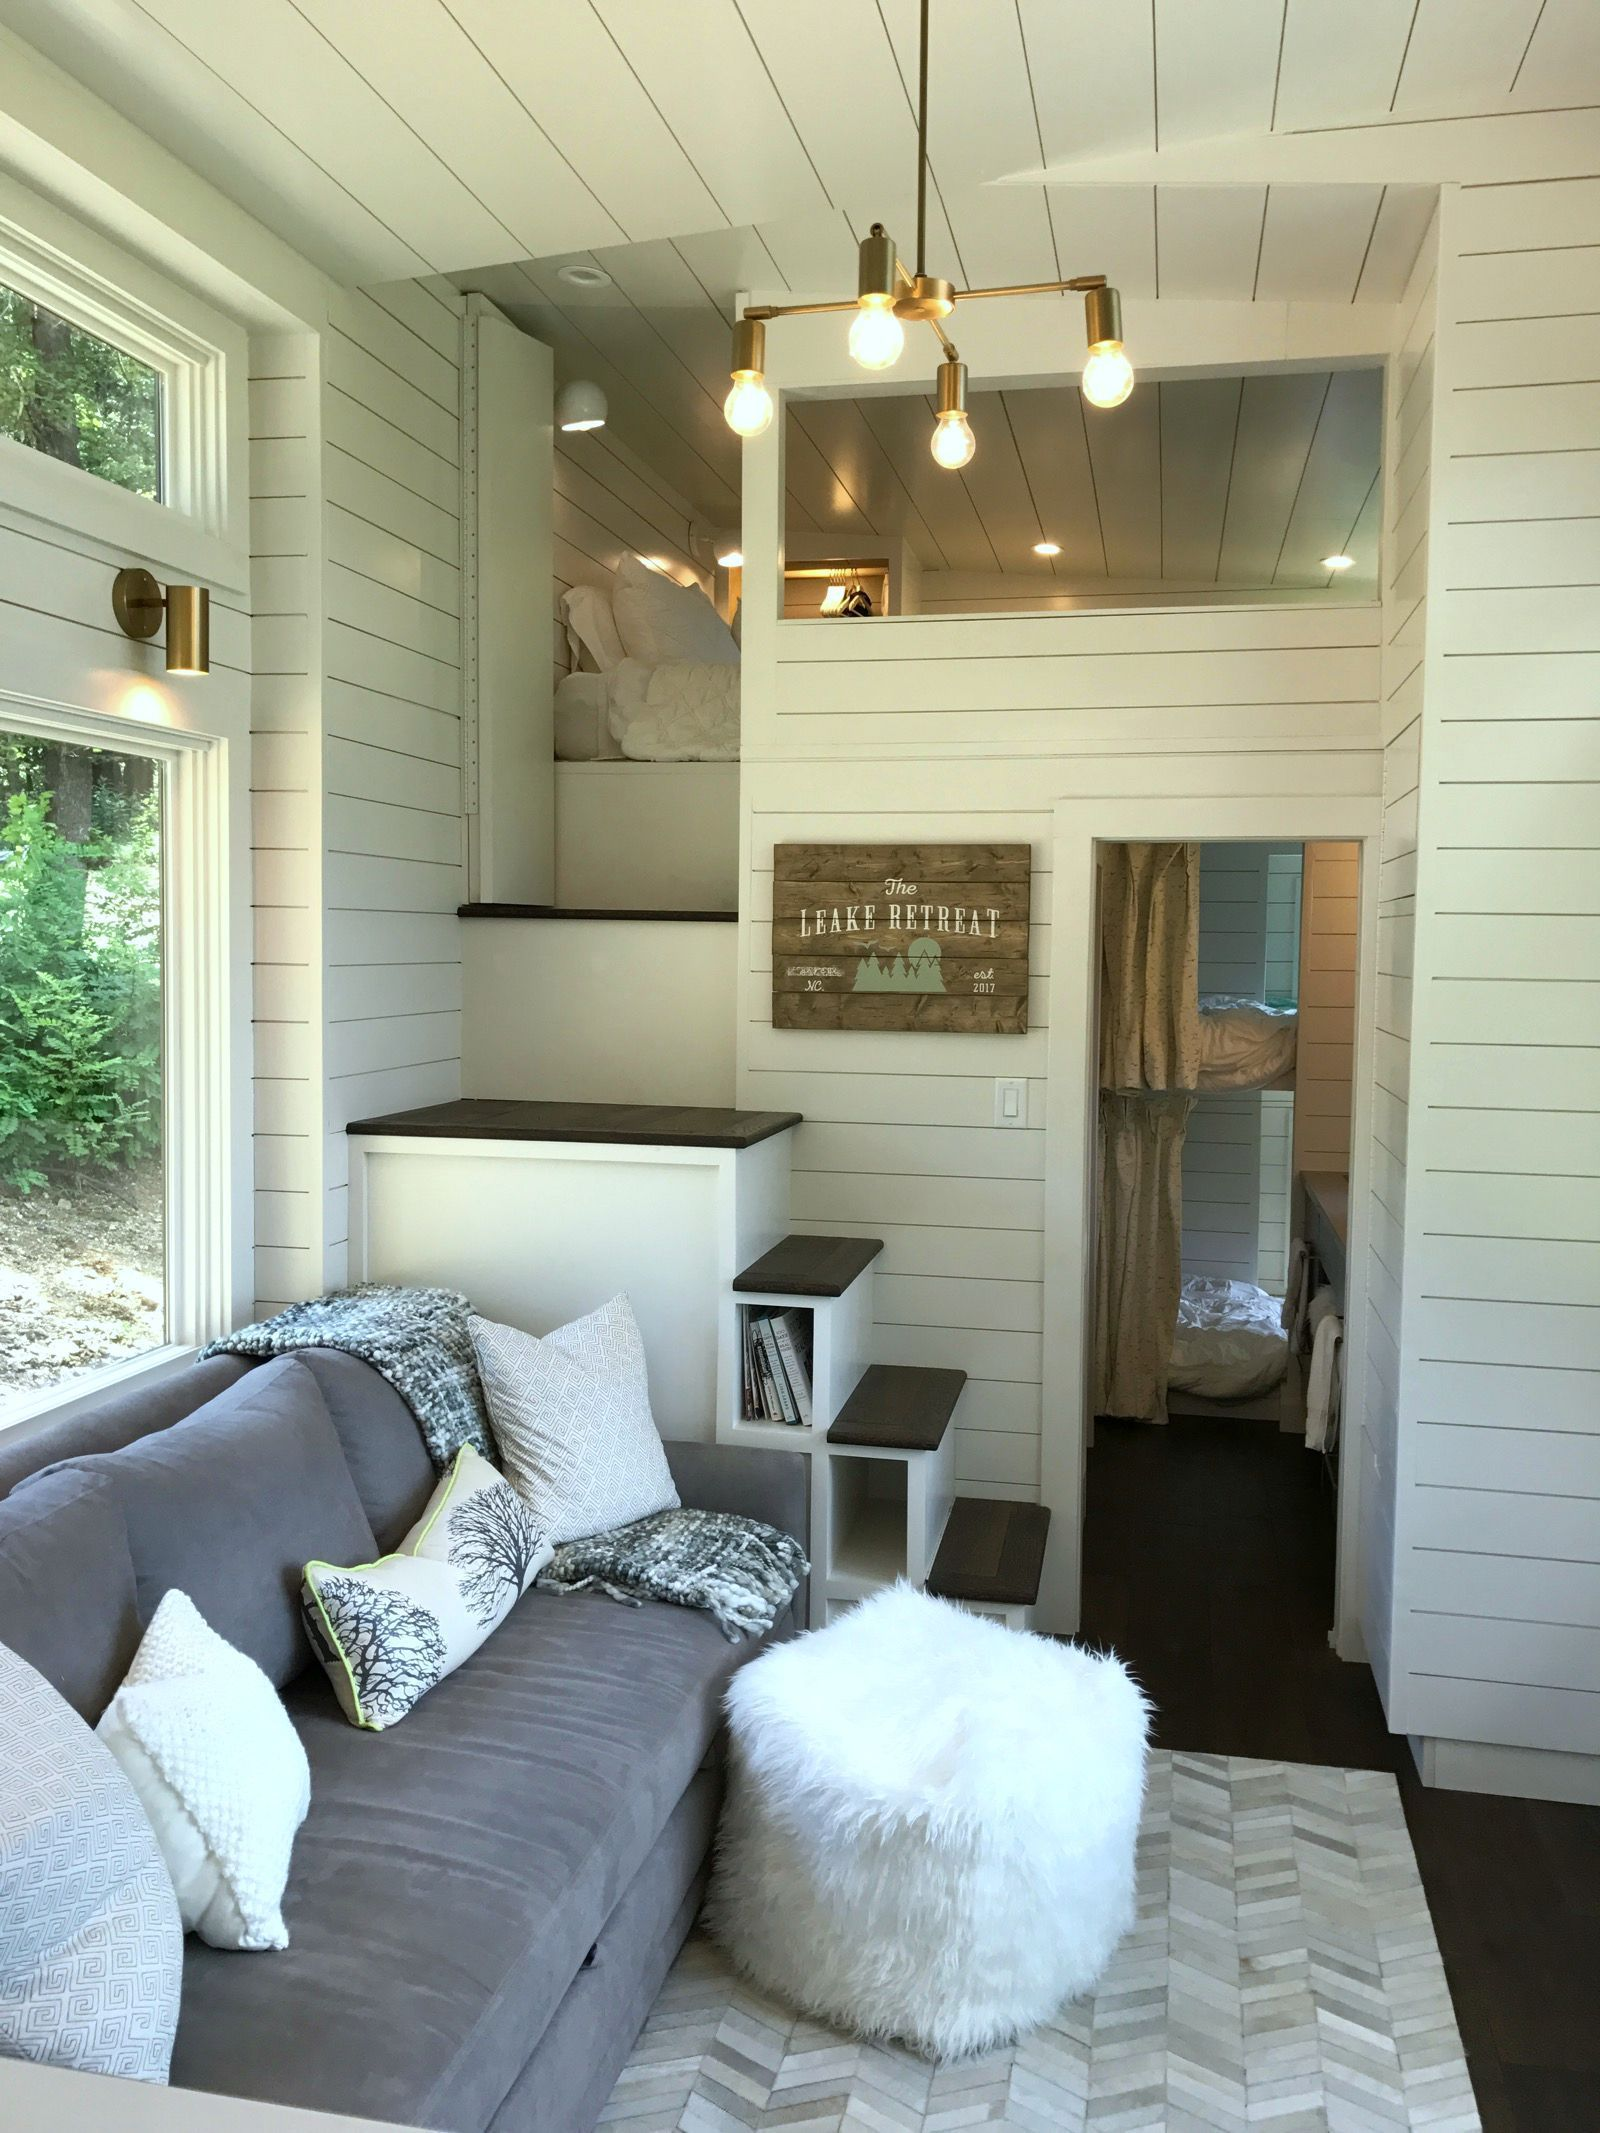 Breathtaking 25 Impressive Tiny Houses That Maximize Function And Style Https Www Decoratop Co 2017 1 Tiny House Decor Tiny House Interior Tiny House Kitchen